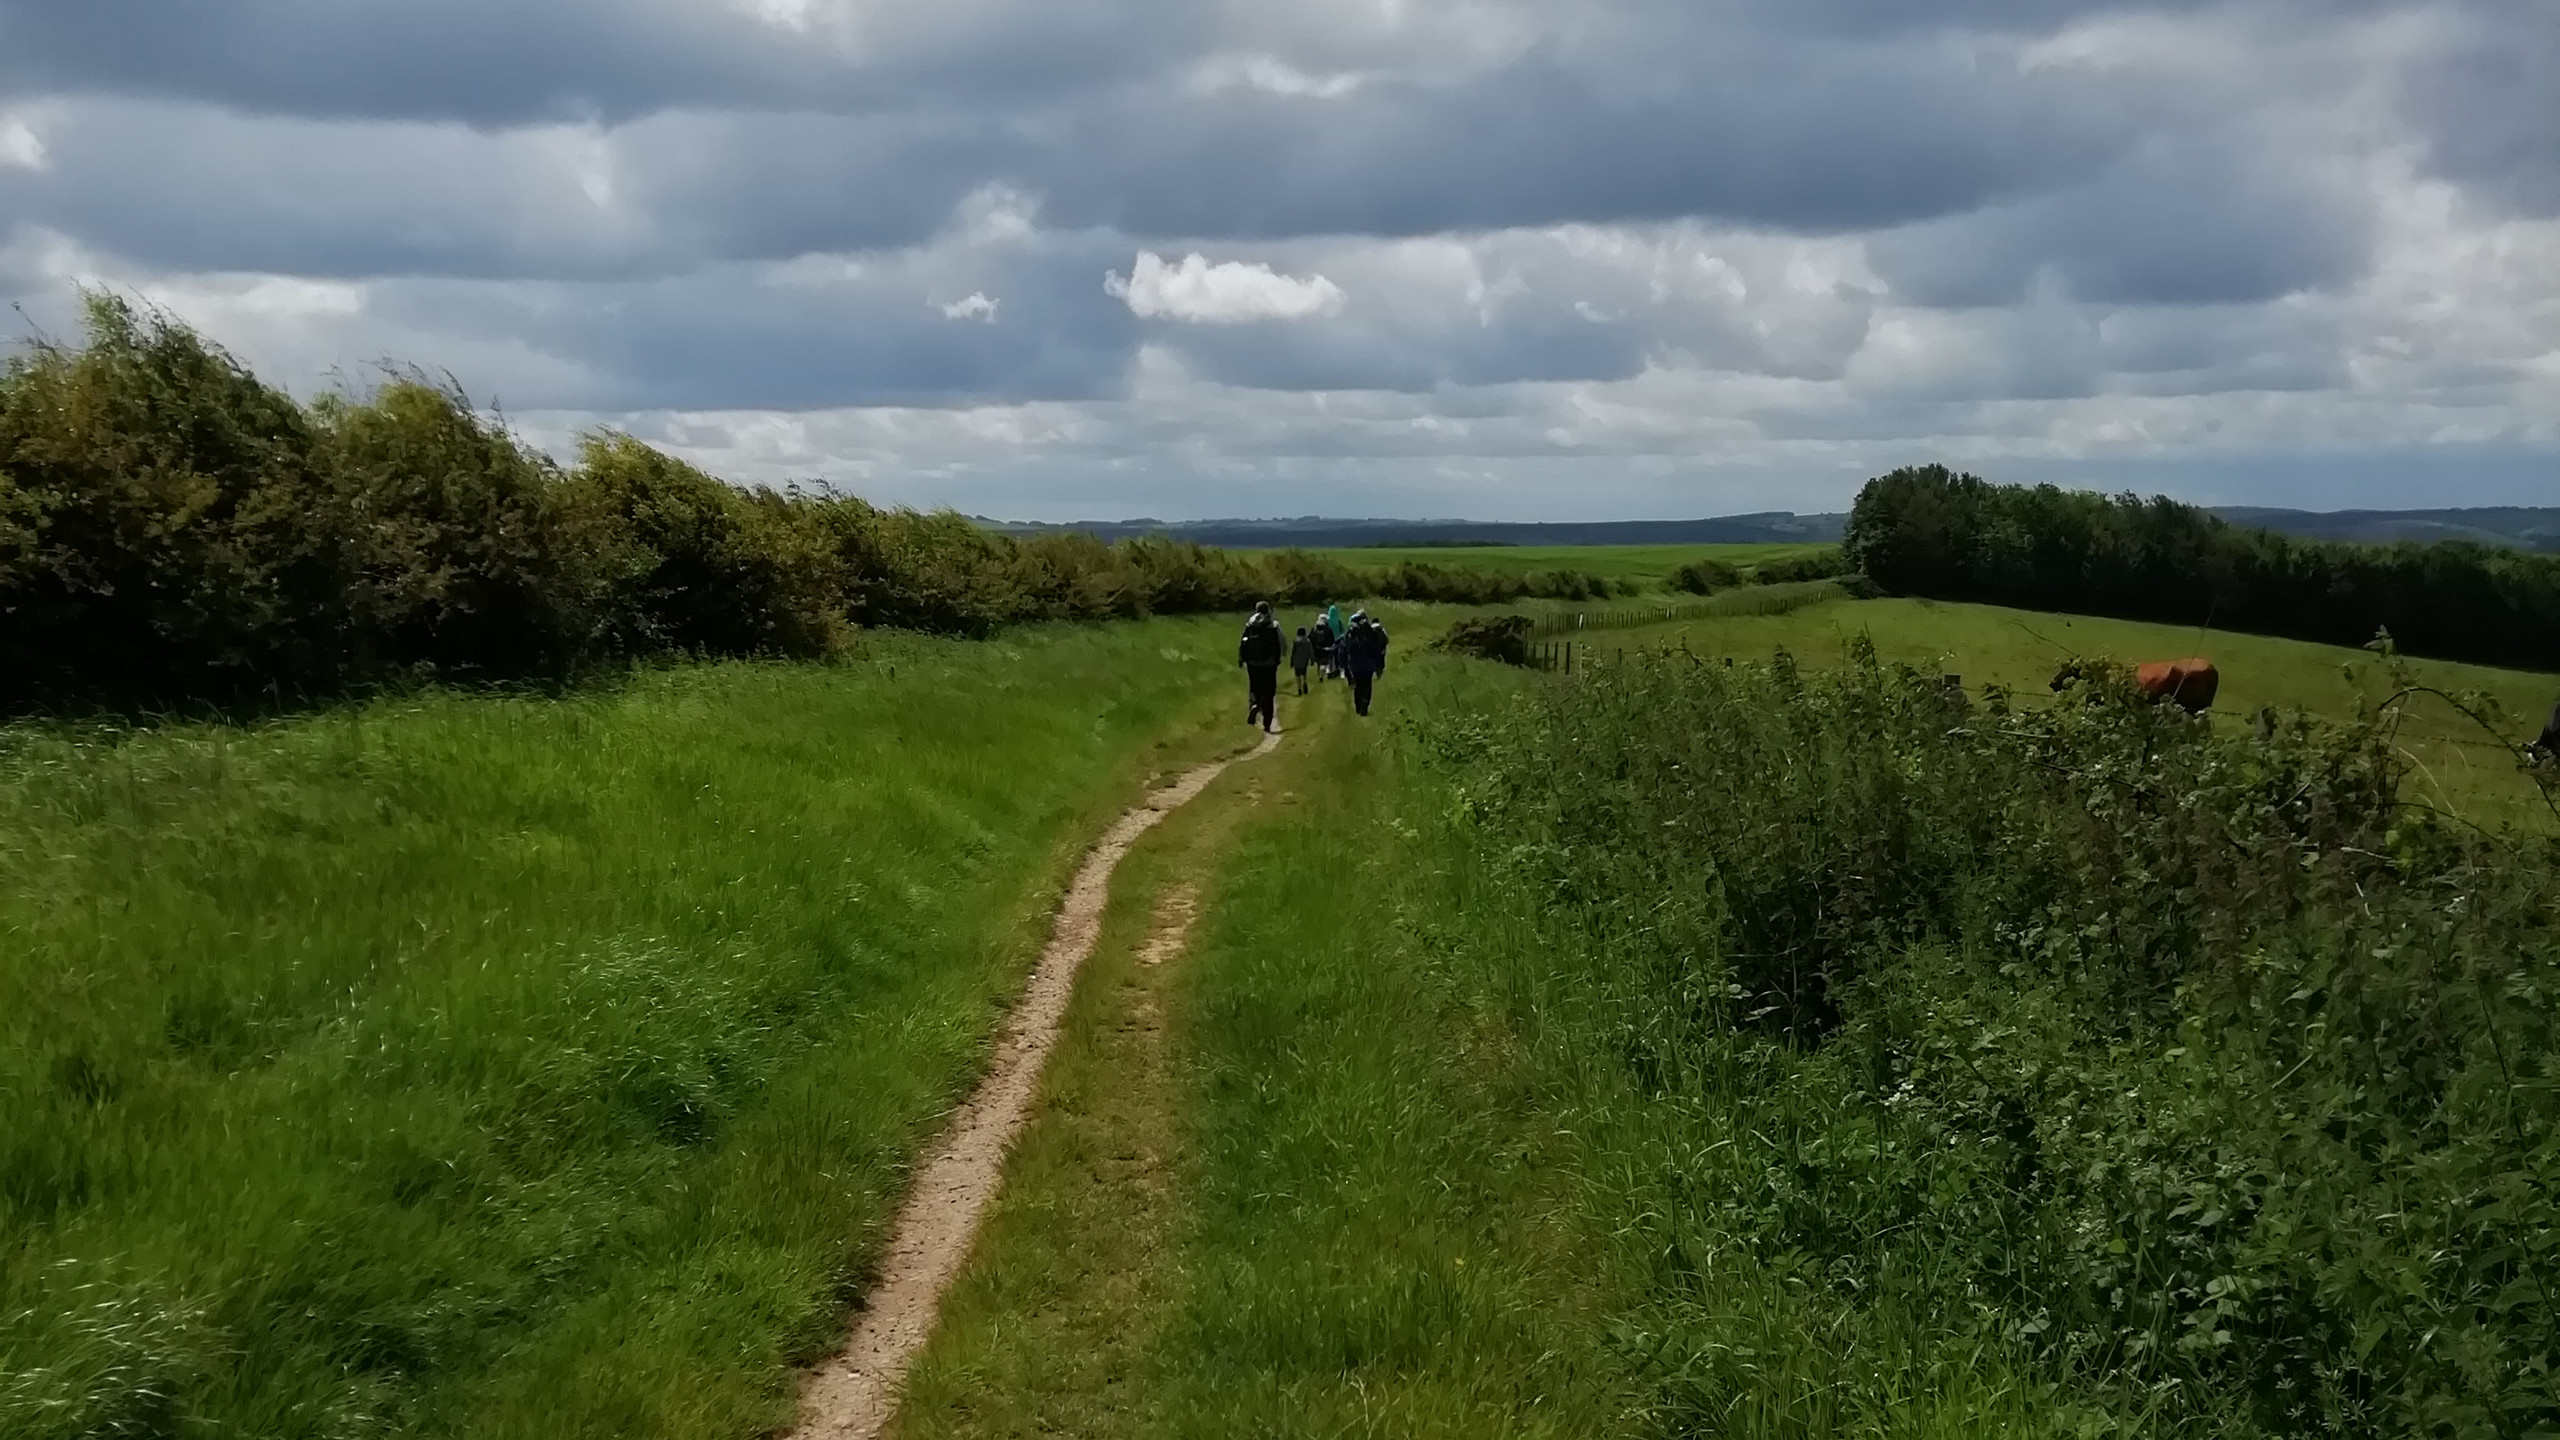 Hiking the Ridgeway